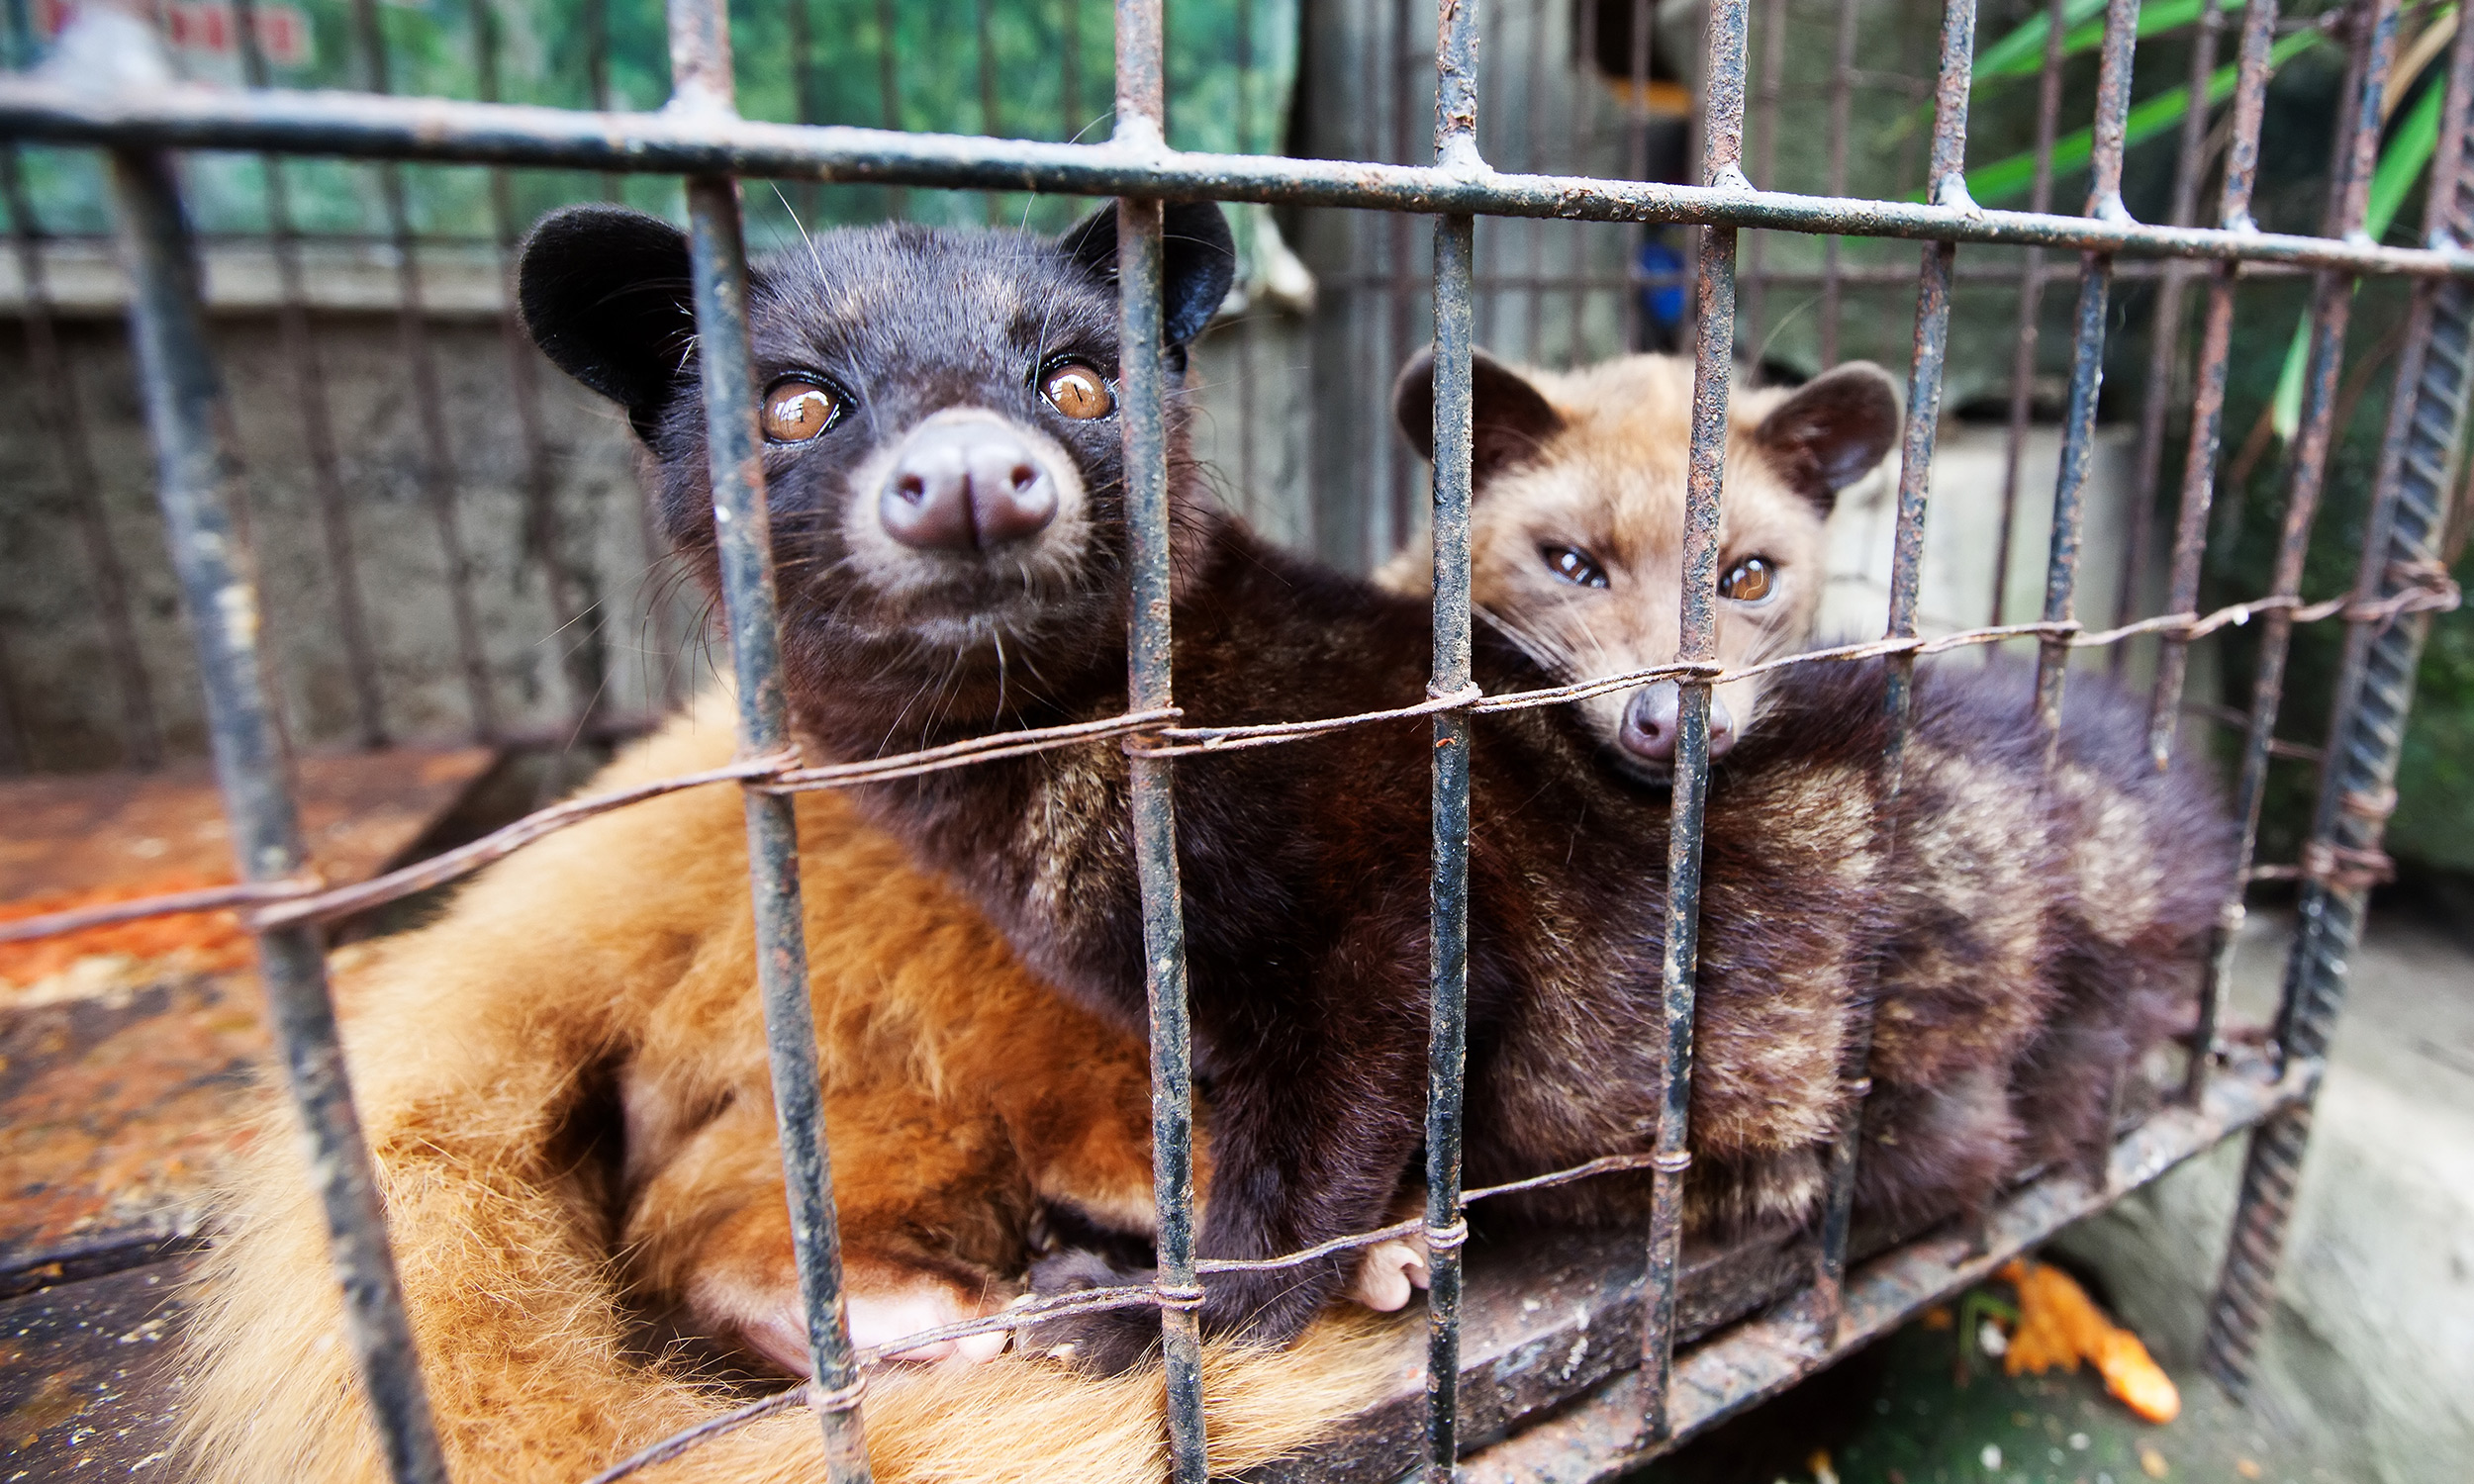 Civets Were Harmed in the Making of the World's Most Expensive Coffee